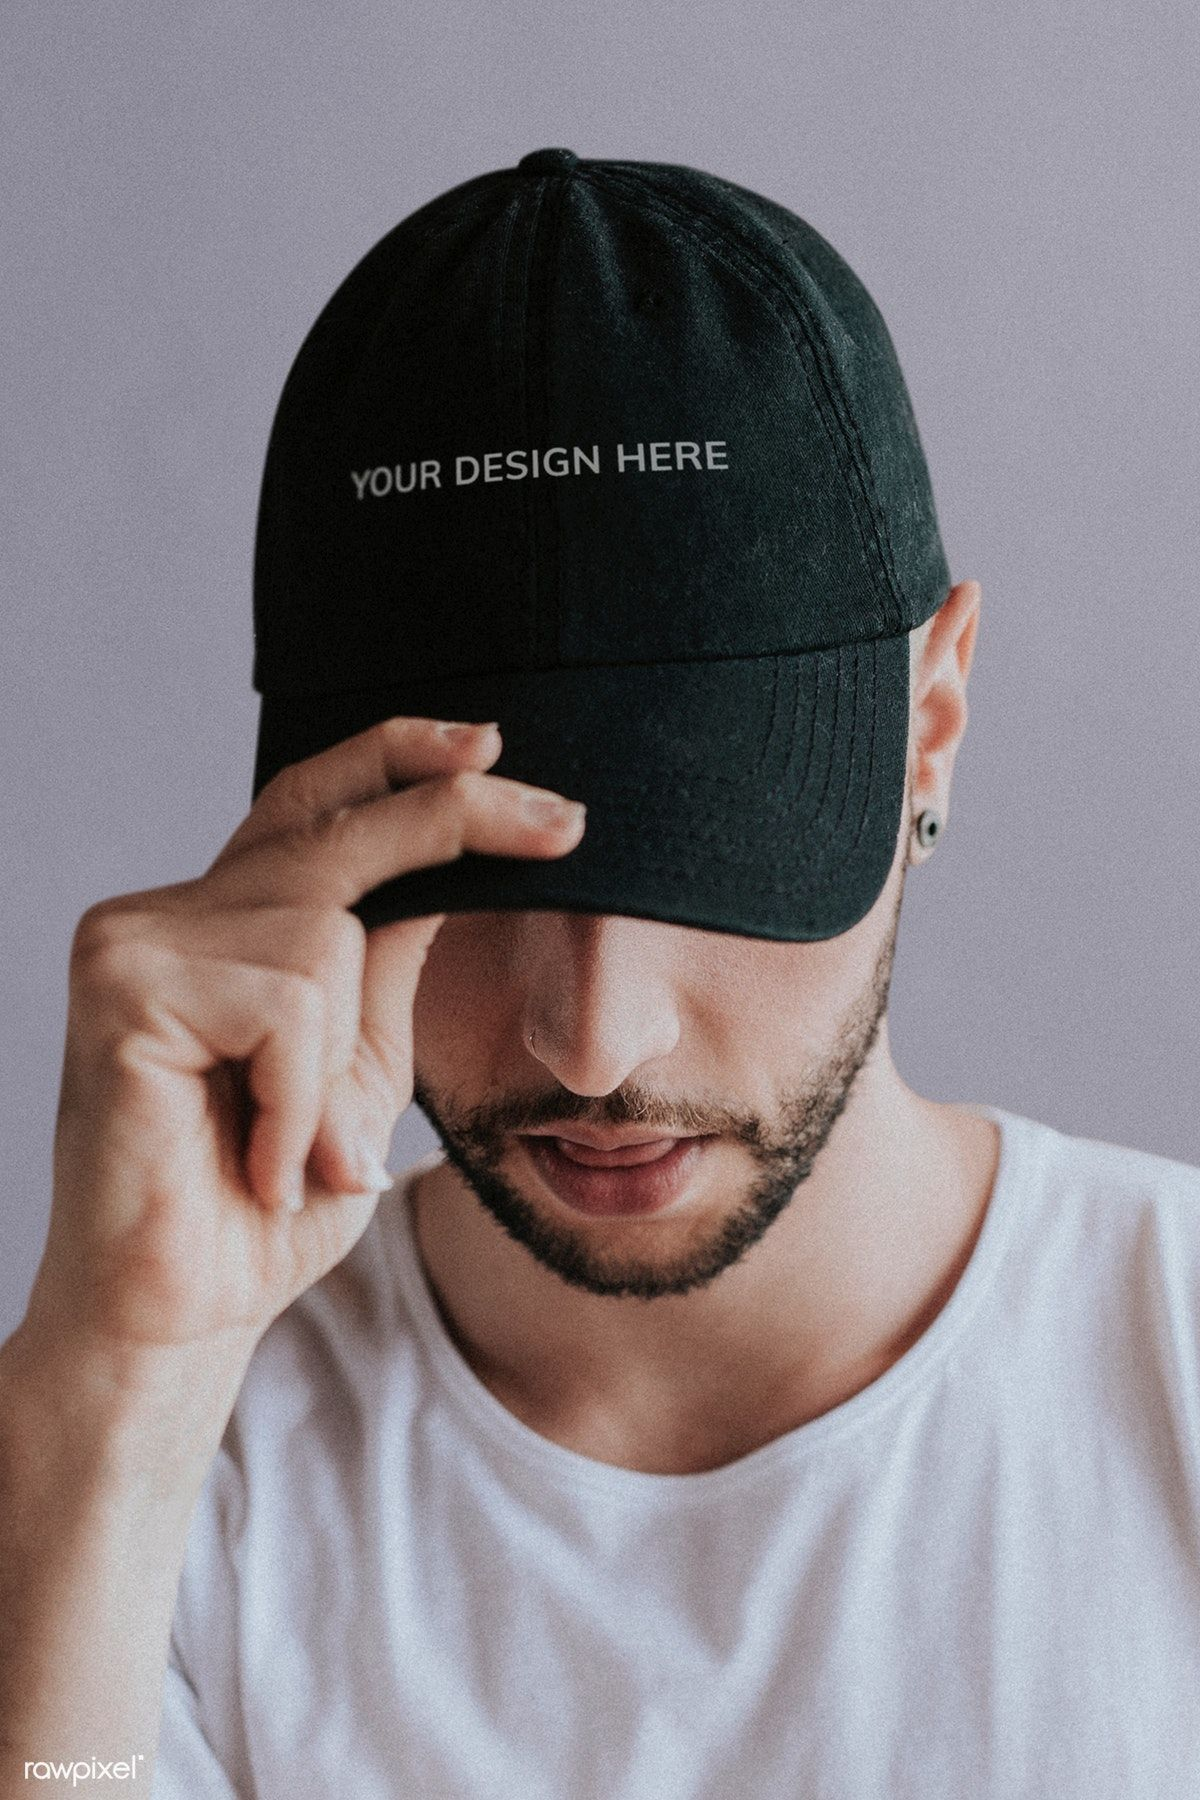 Download Premium Psd Of Man With A Black Cap Mockup 1216504 Black Cap Clothing Mockup Men With Cap